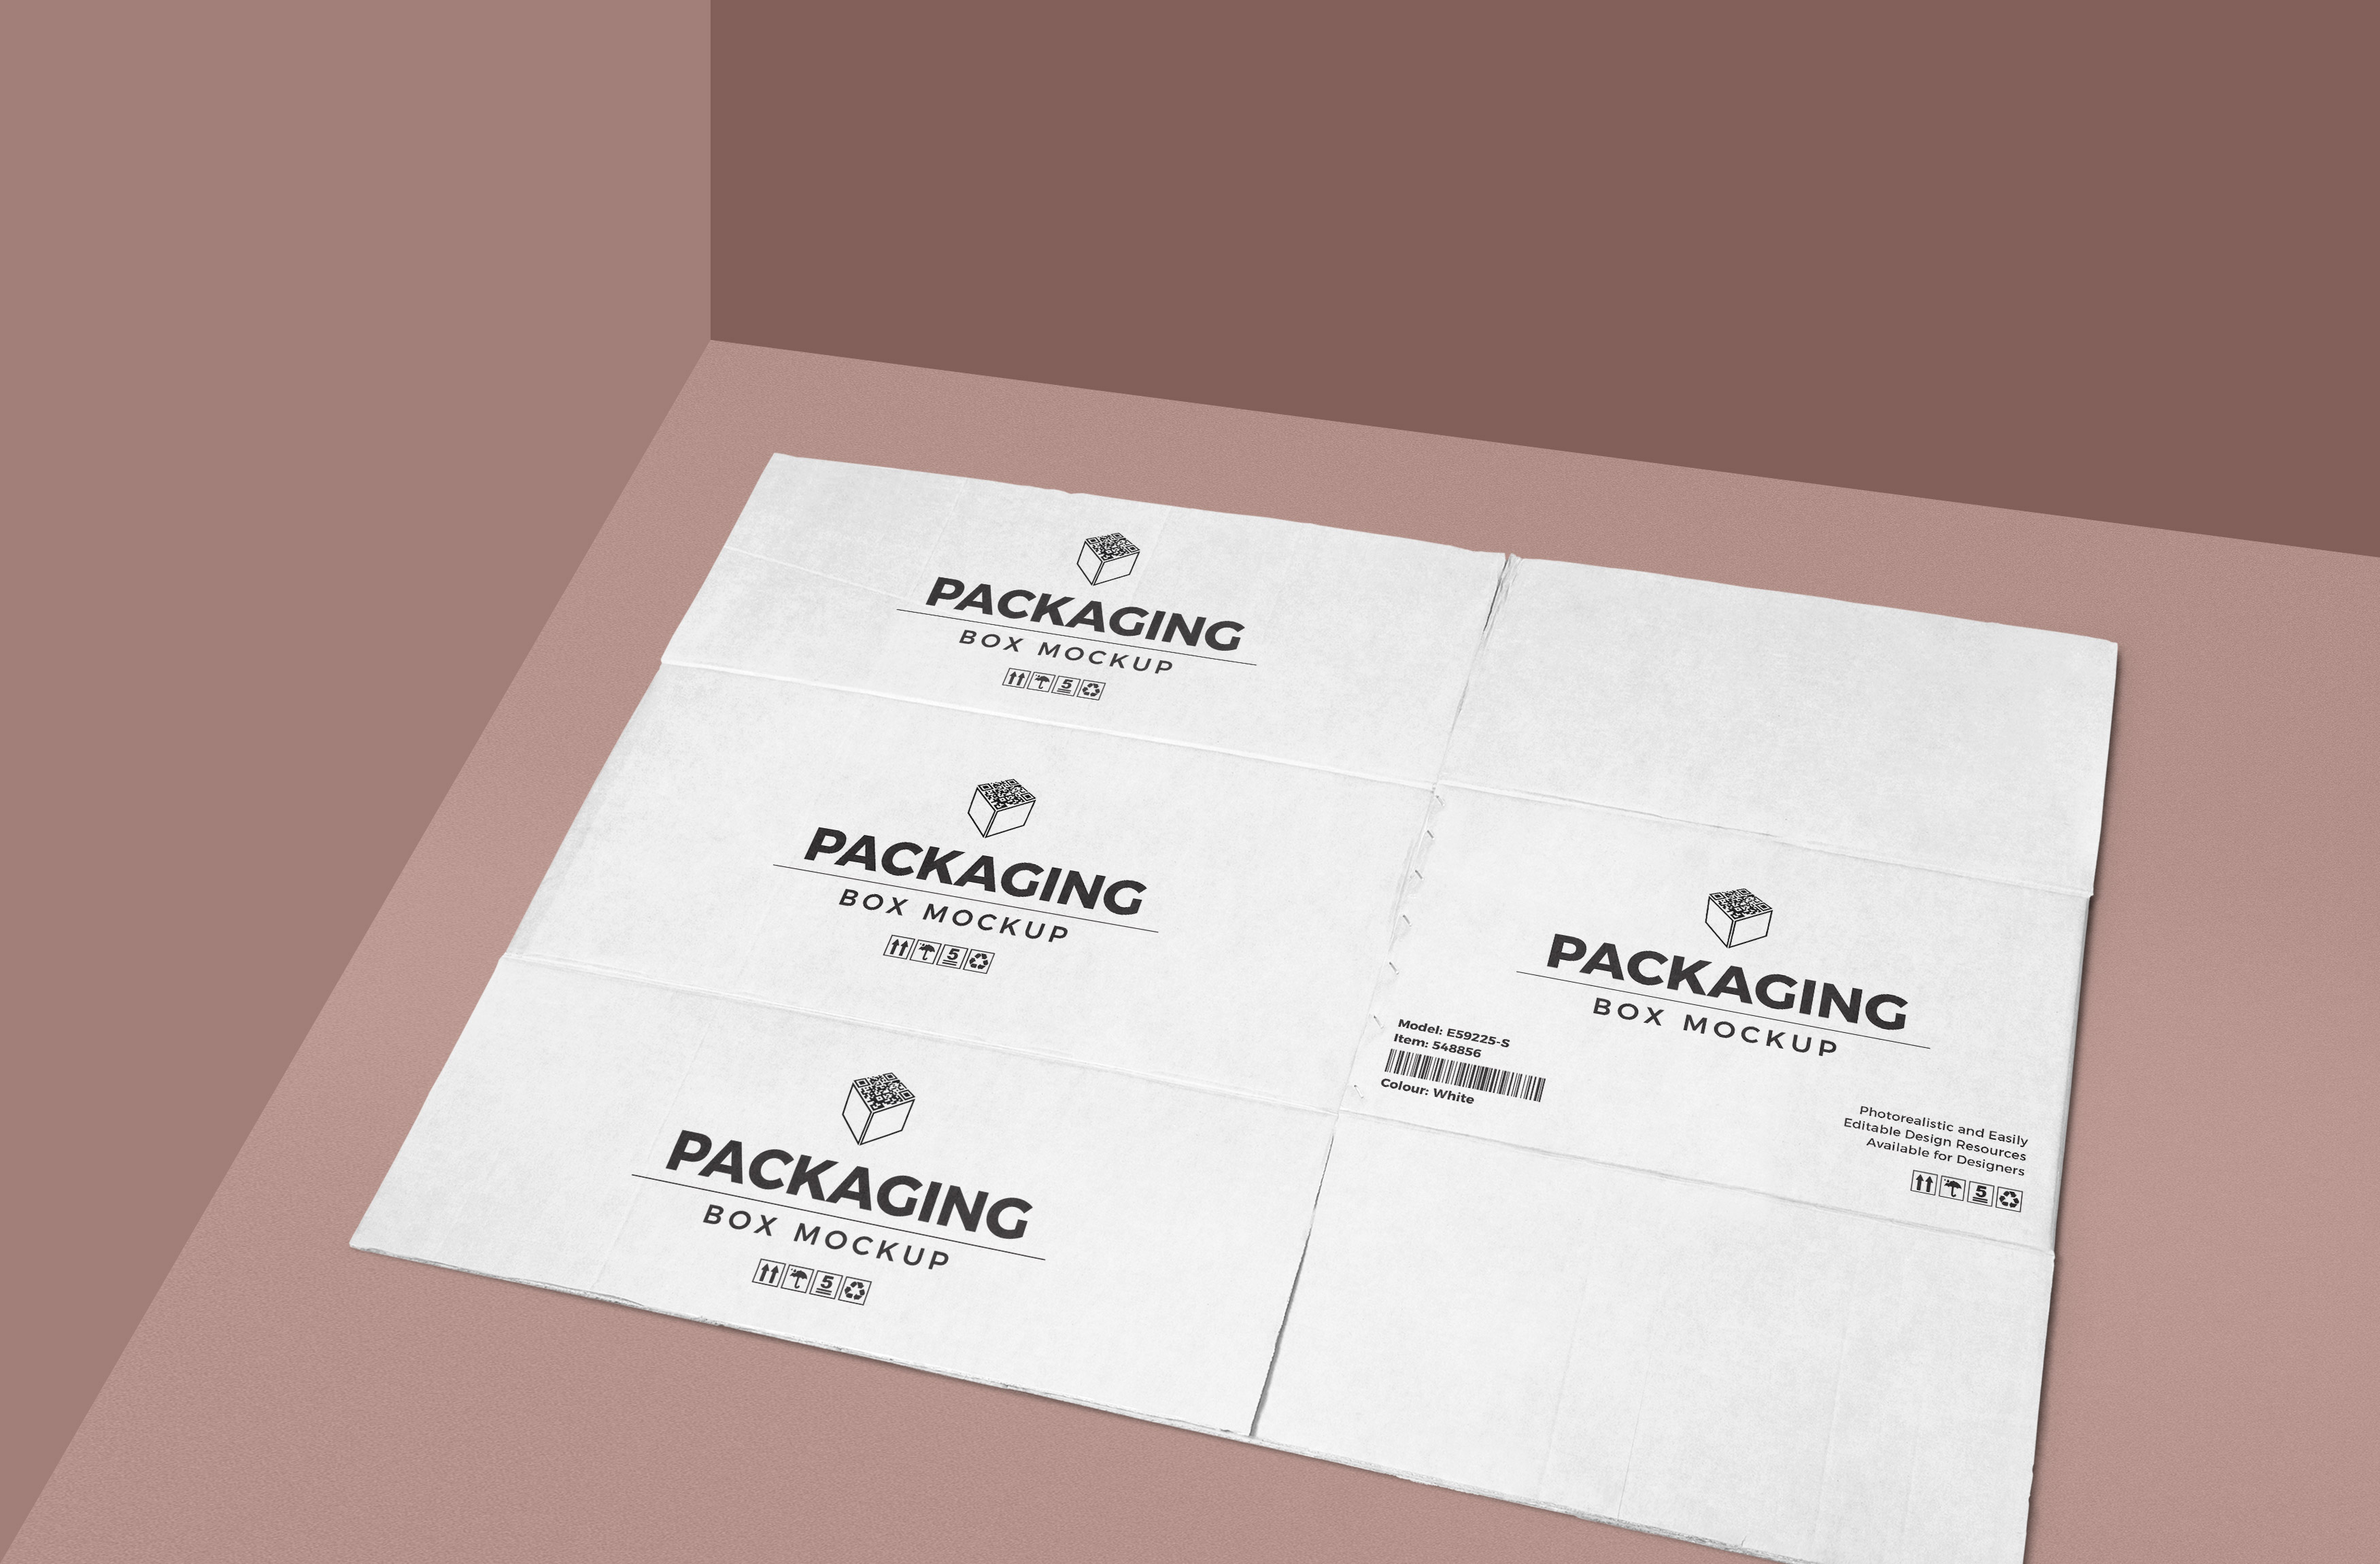 packaging-box-mockup-bonus-1.jpg